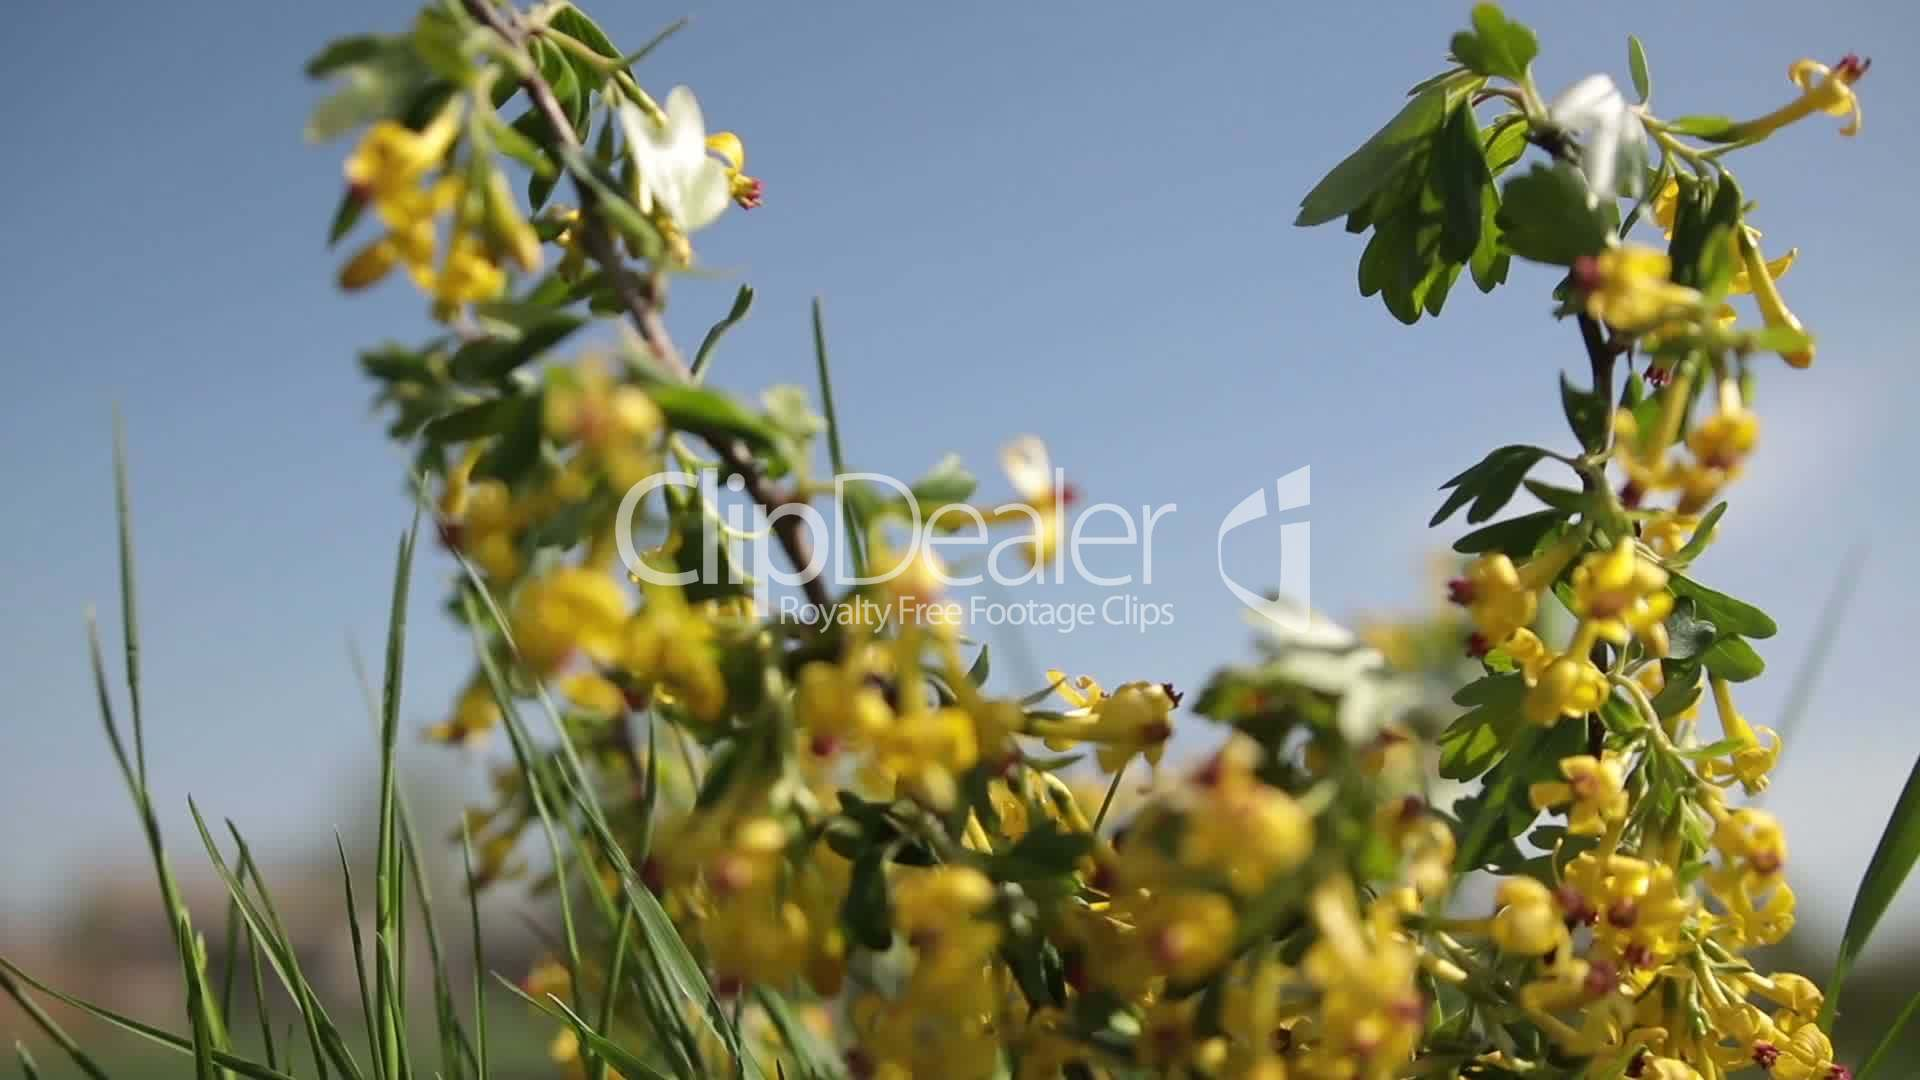 Golden Currant Blooming Bright Yellow Flowers Royalty Free Video